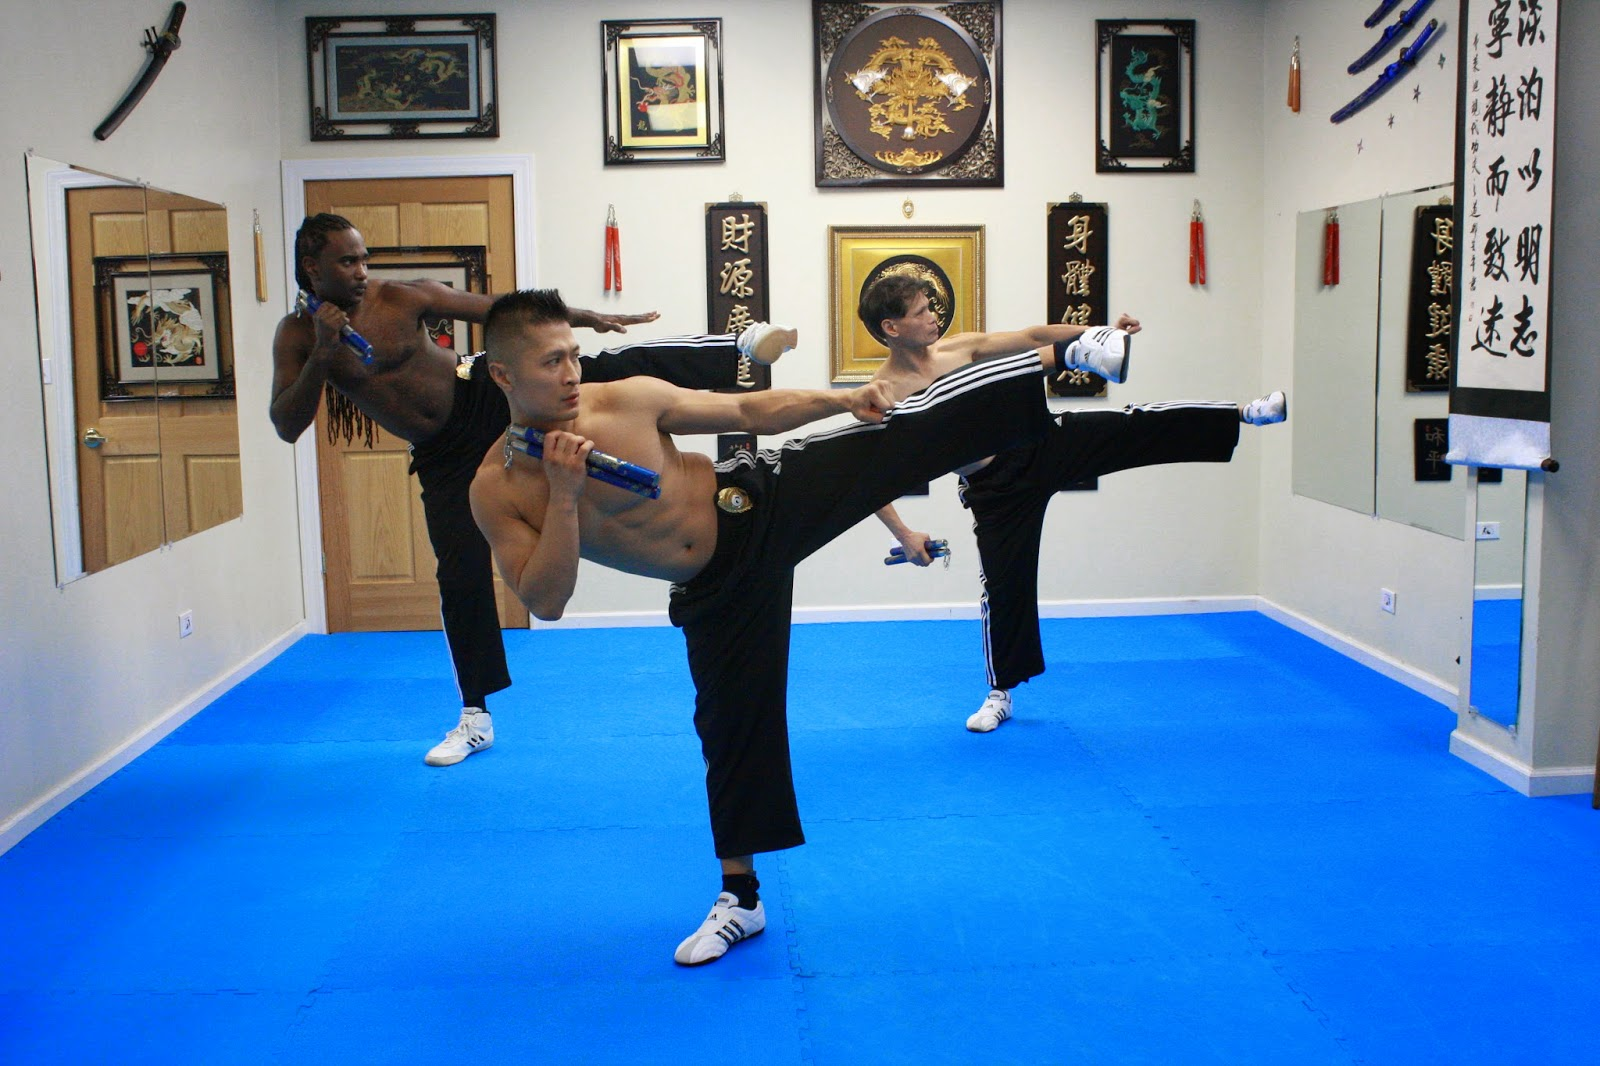 tao of freddie s modern kung fu tae kwon do is jeet kune do